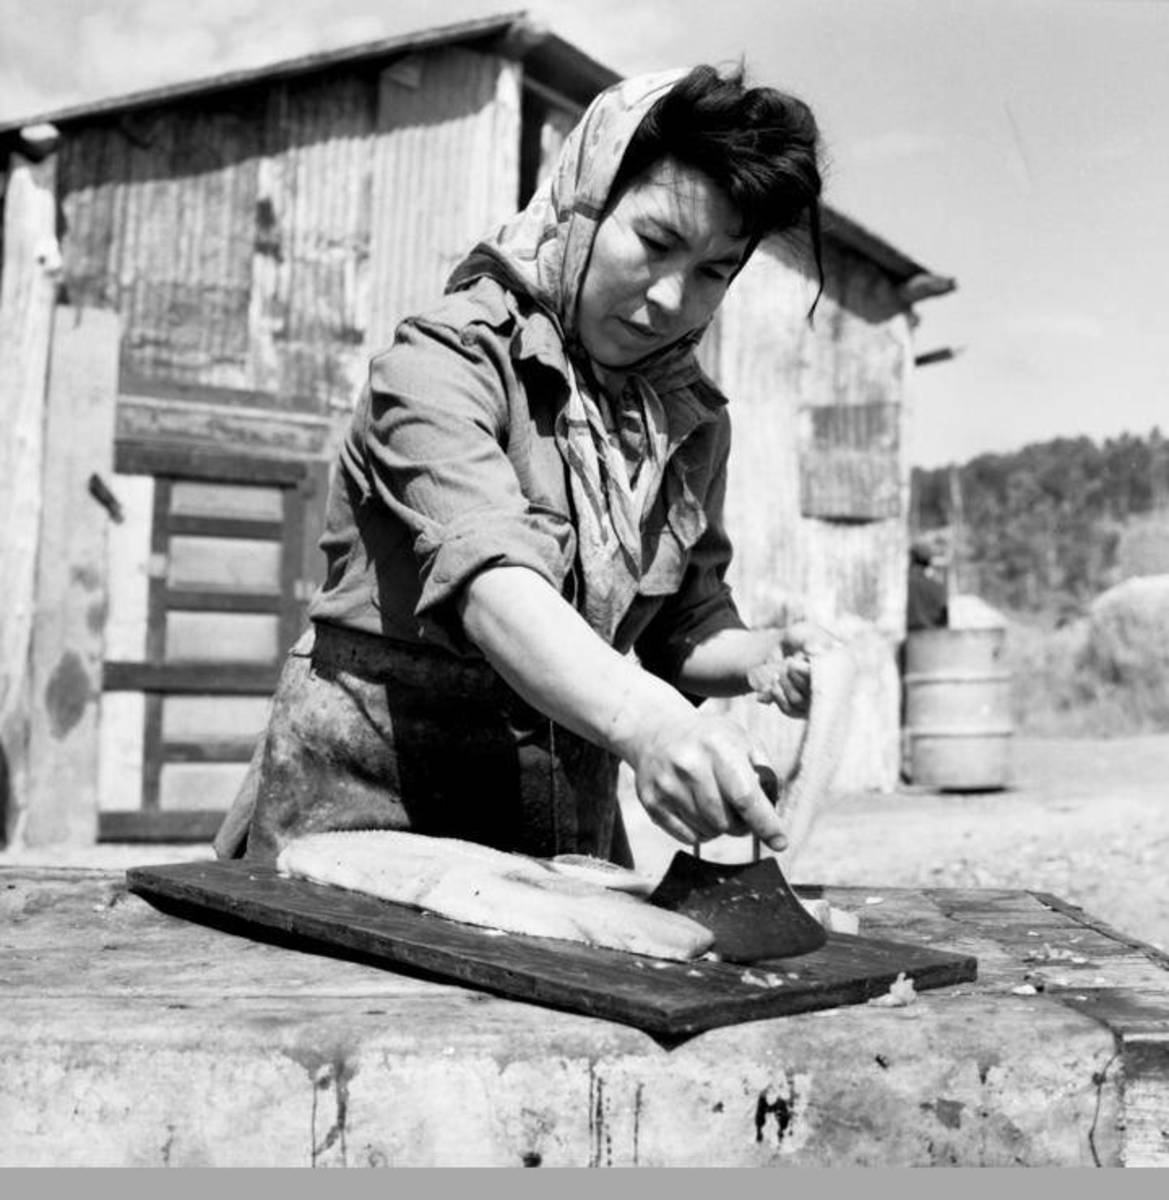 An Alaska Native woman cutting king salmon at the village of Piamute. (Photo courtesy of the Anchorage Museum at Rasmuson Center).